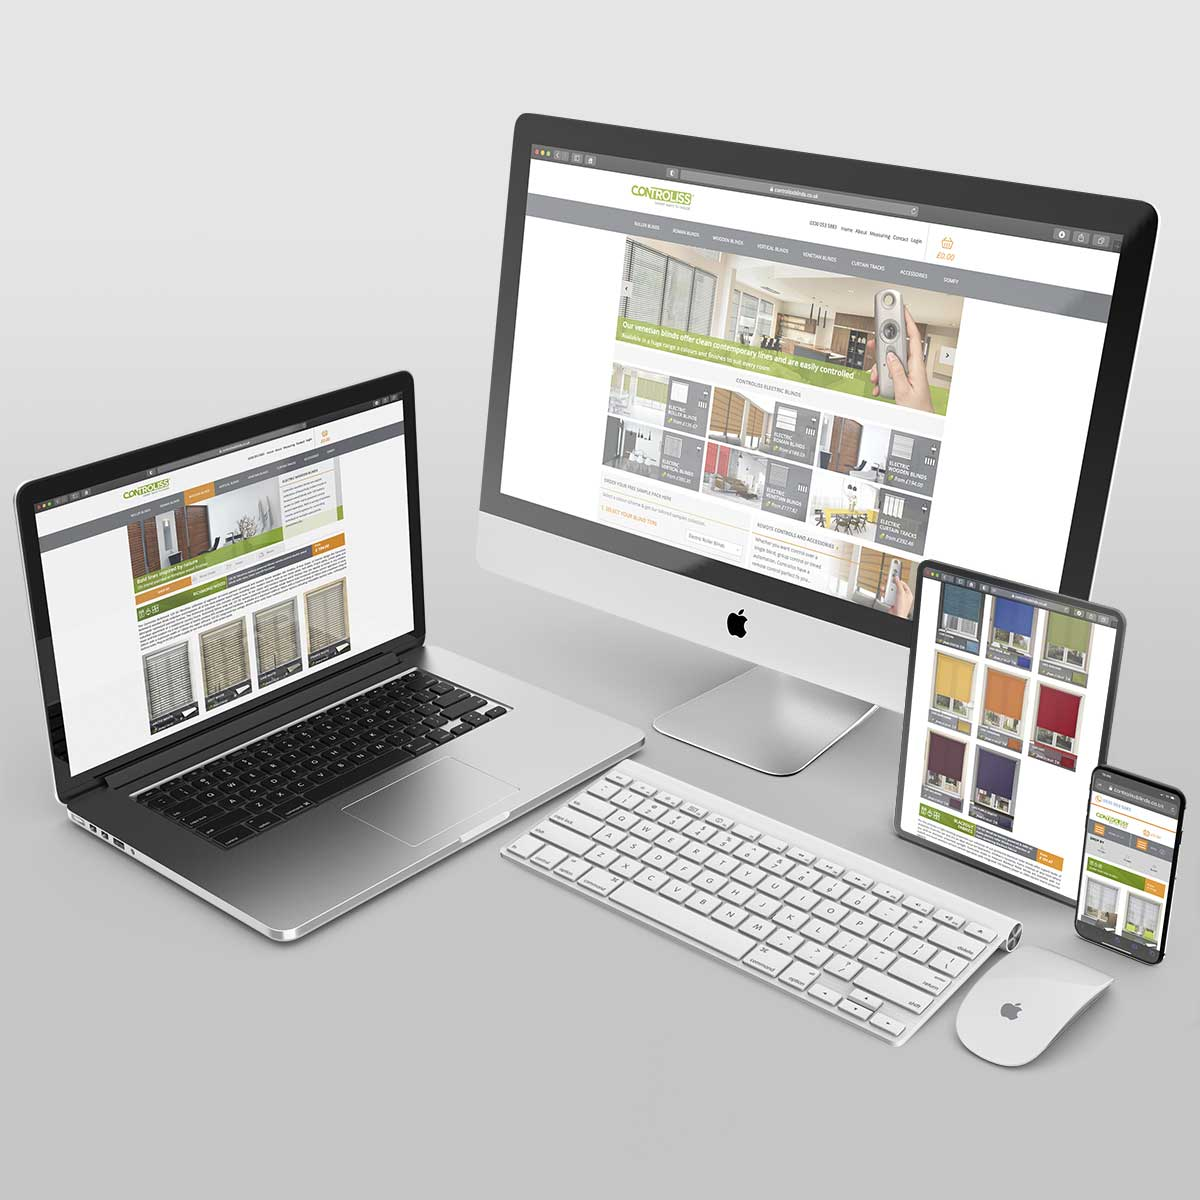 Controliss responsive website design shown on multiple device types